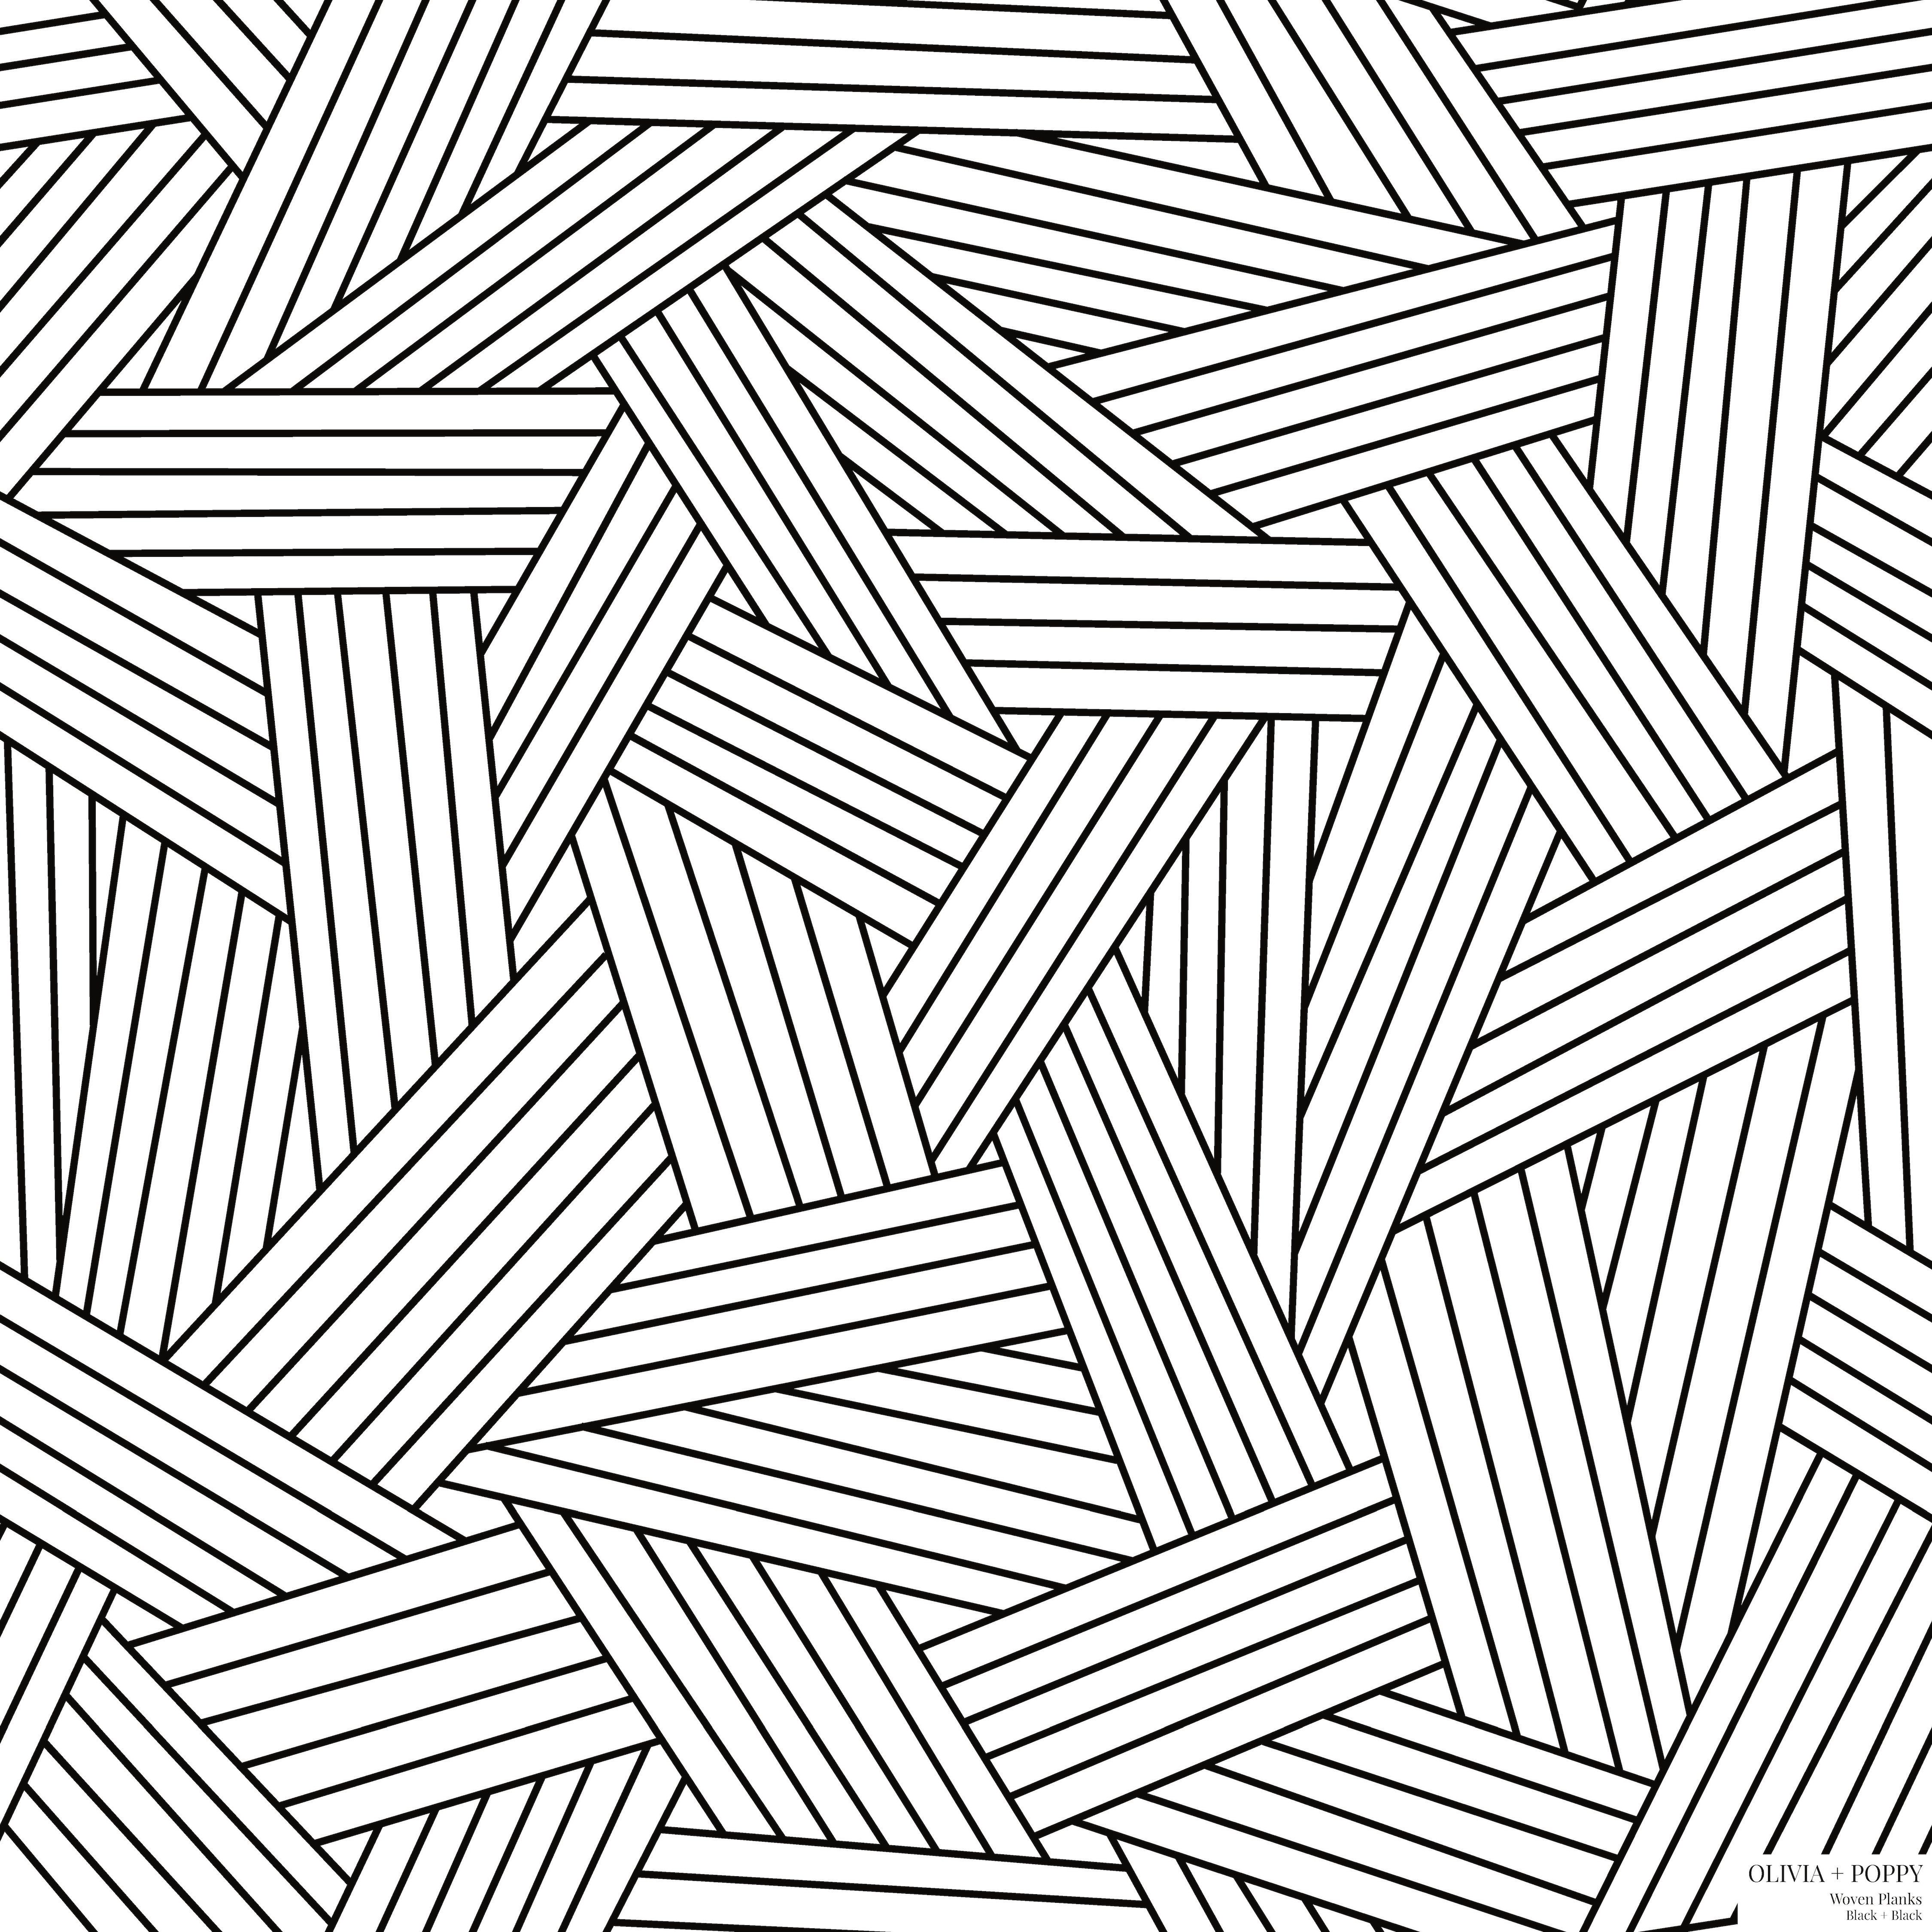 Woven Planks Pattern Drawings Black White Illustration